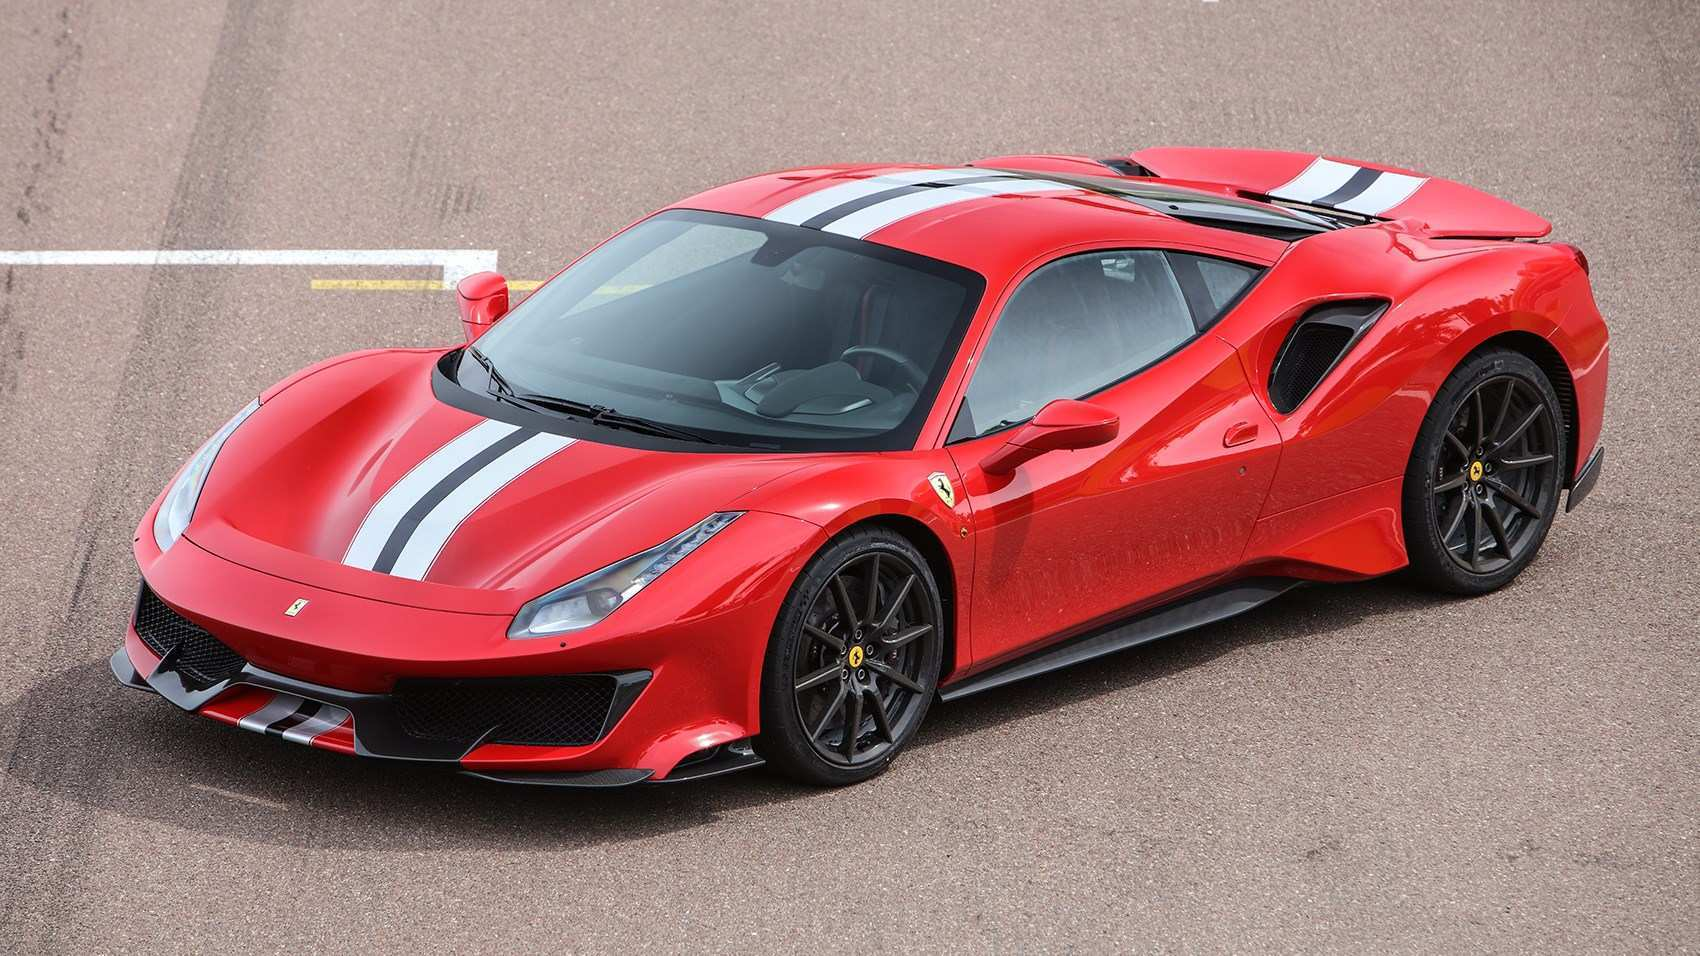 41 Best Review 2019 Ferrari 488 Pista For Sale Research New by 2019 Ferrari 488 Pista For Sale